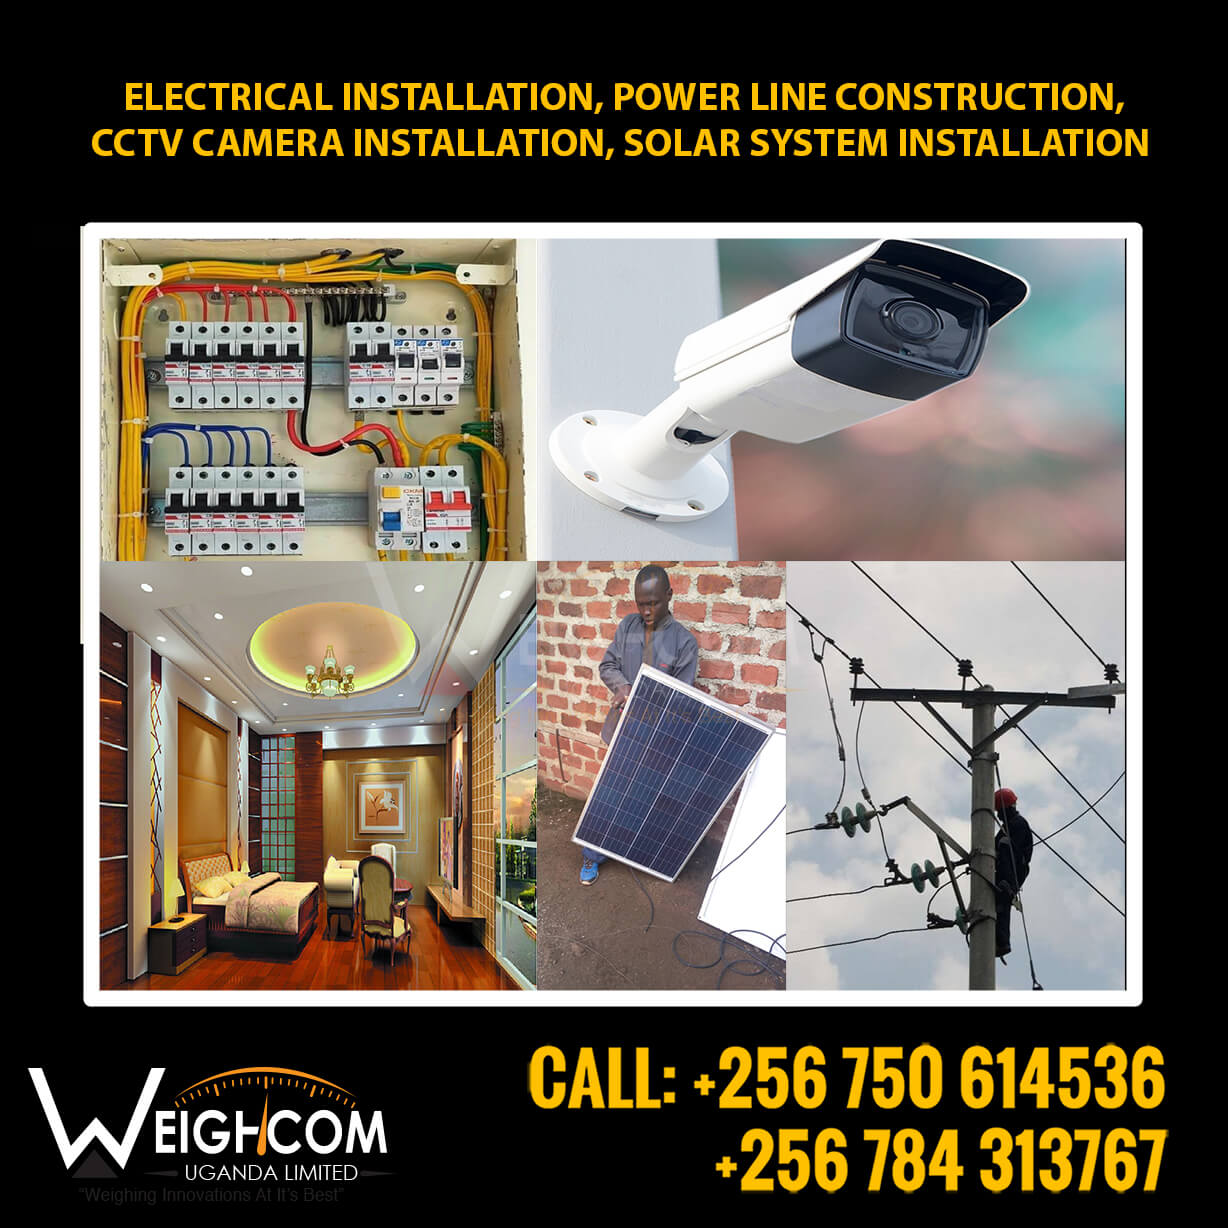 Electrical installation company in Uganda.